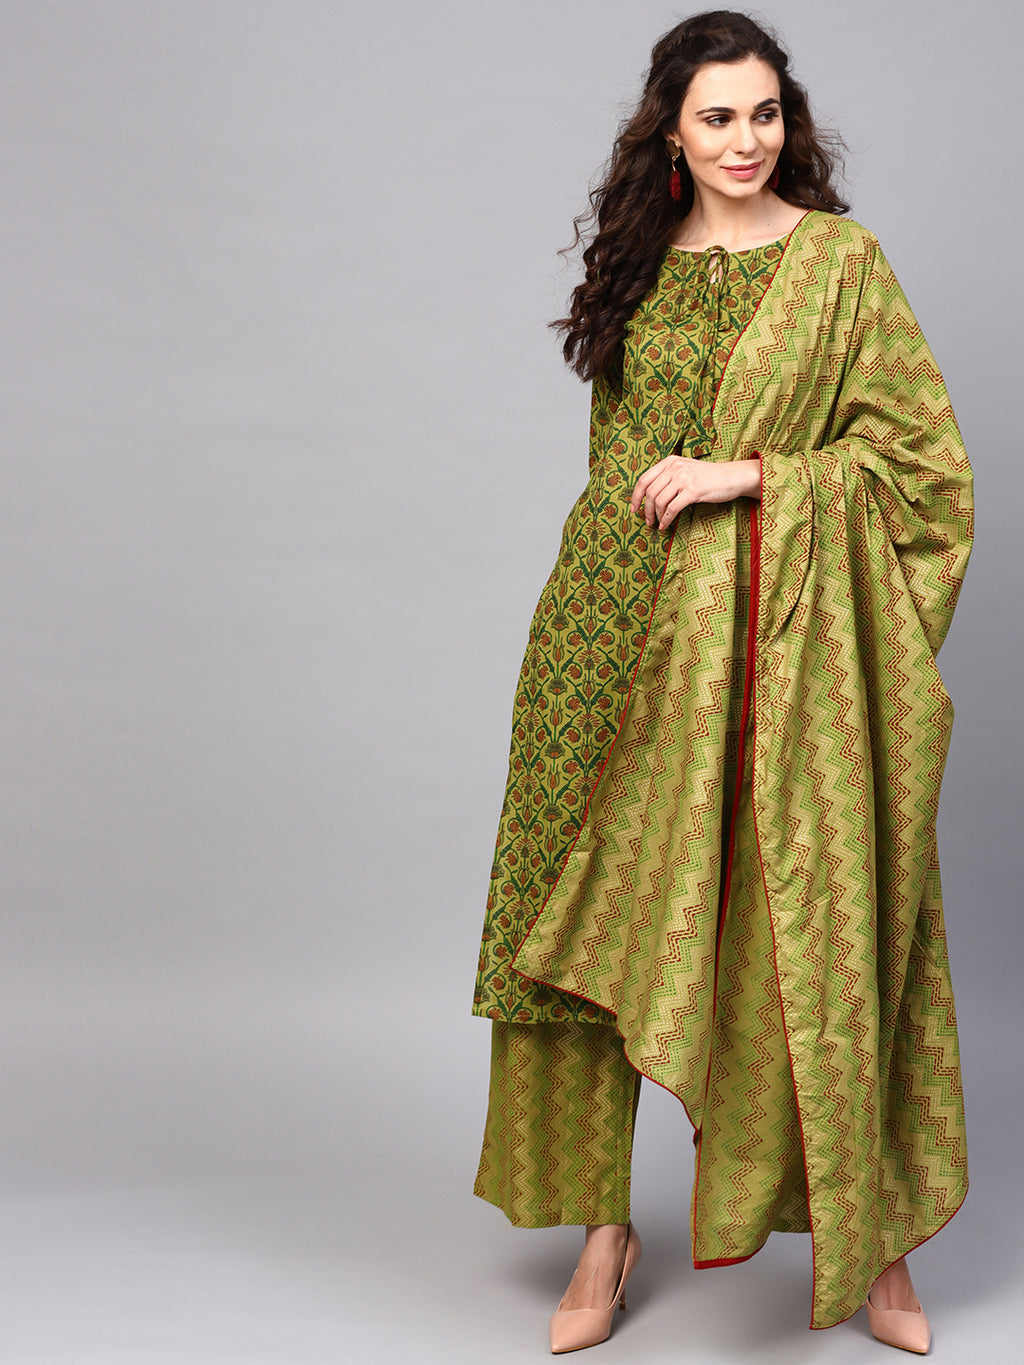 Green Gold Floral Printed Straight Kurta With Palazzo & Dupatta Set (Fully Stitched) | Znx4ever.com